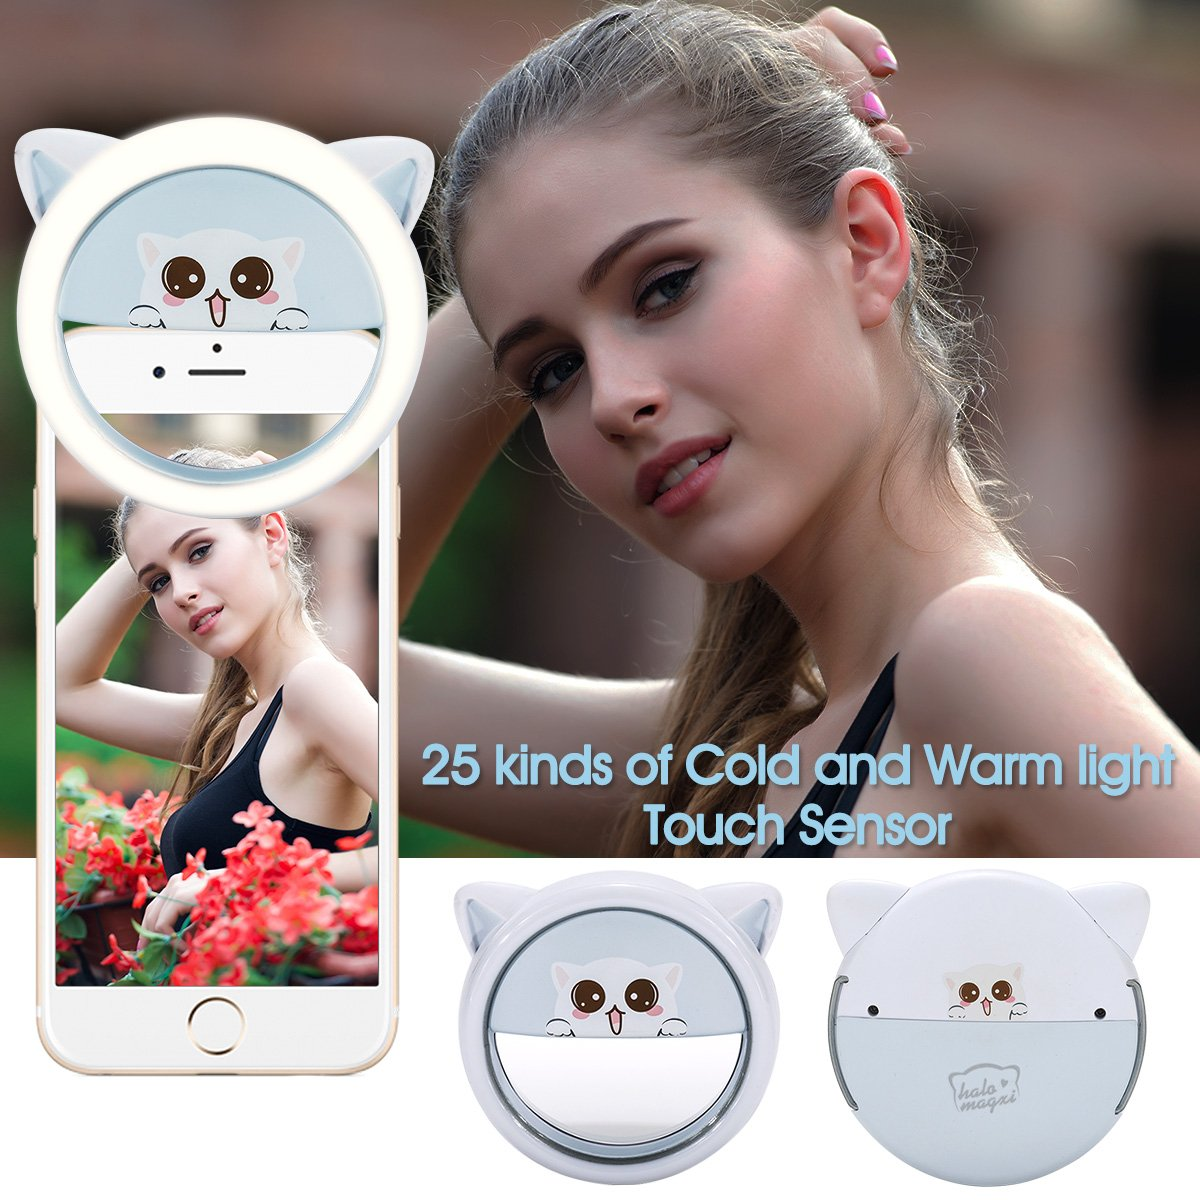 Selfie Light,Bienna Selfie Ring Light Flash Fill [44 LED] [USB Rechargeable] [5-Level Brightness & Color Temp] Camera Lighting With Power Bank and Stand for iPhone iPad Android Sumsung HTC Huawei-Blue